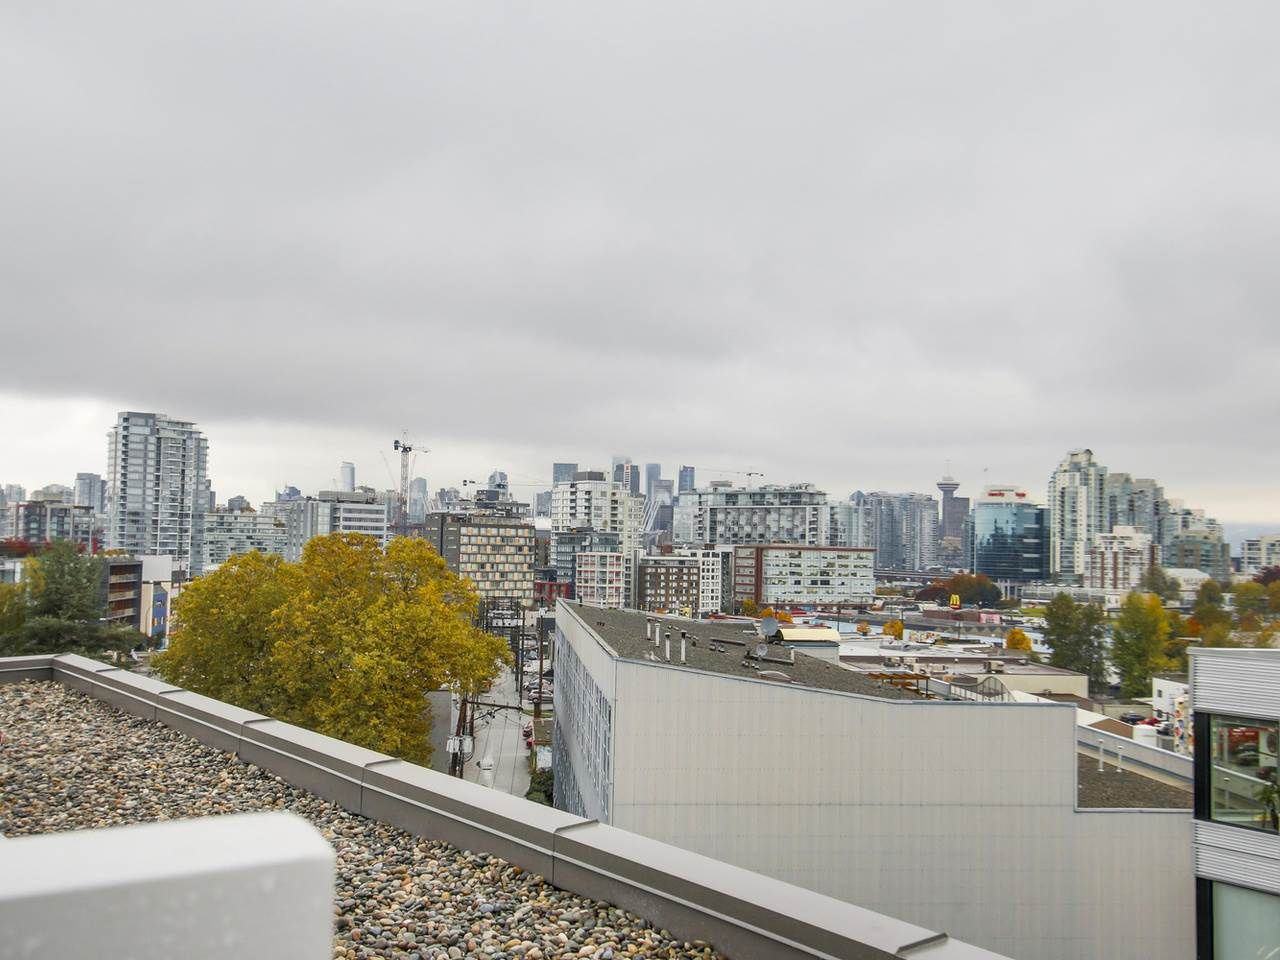 """Photo 14: Photos: 604 417 GREAT NORTHERN Way in Vancouver: Mount Pleasant VE Condo for sale in """"CANVAS"""" (Vancouver East)  : MLS®# R2118078"""